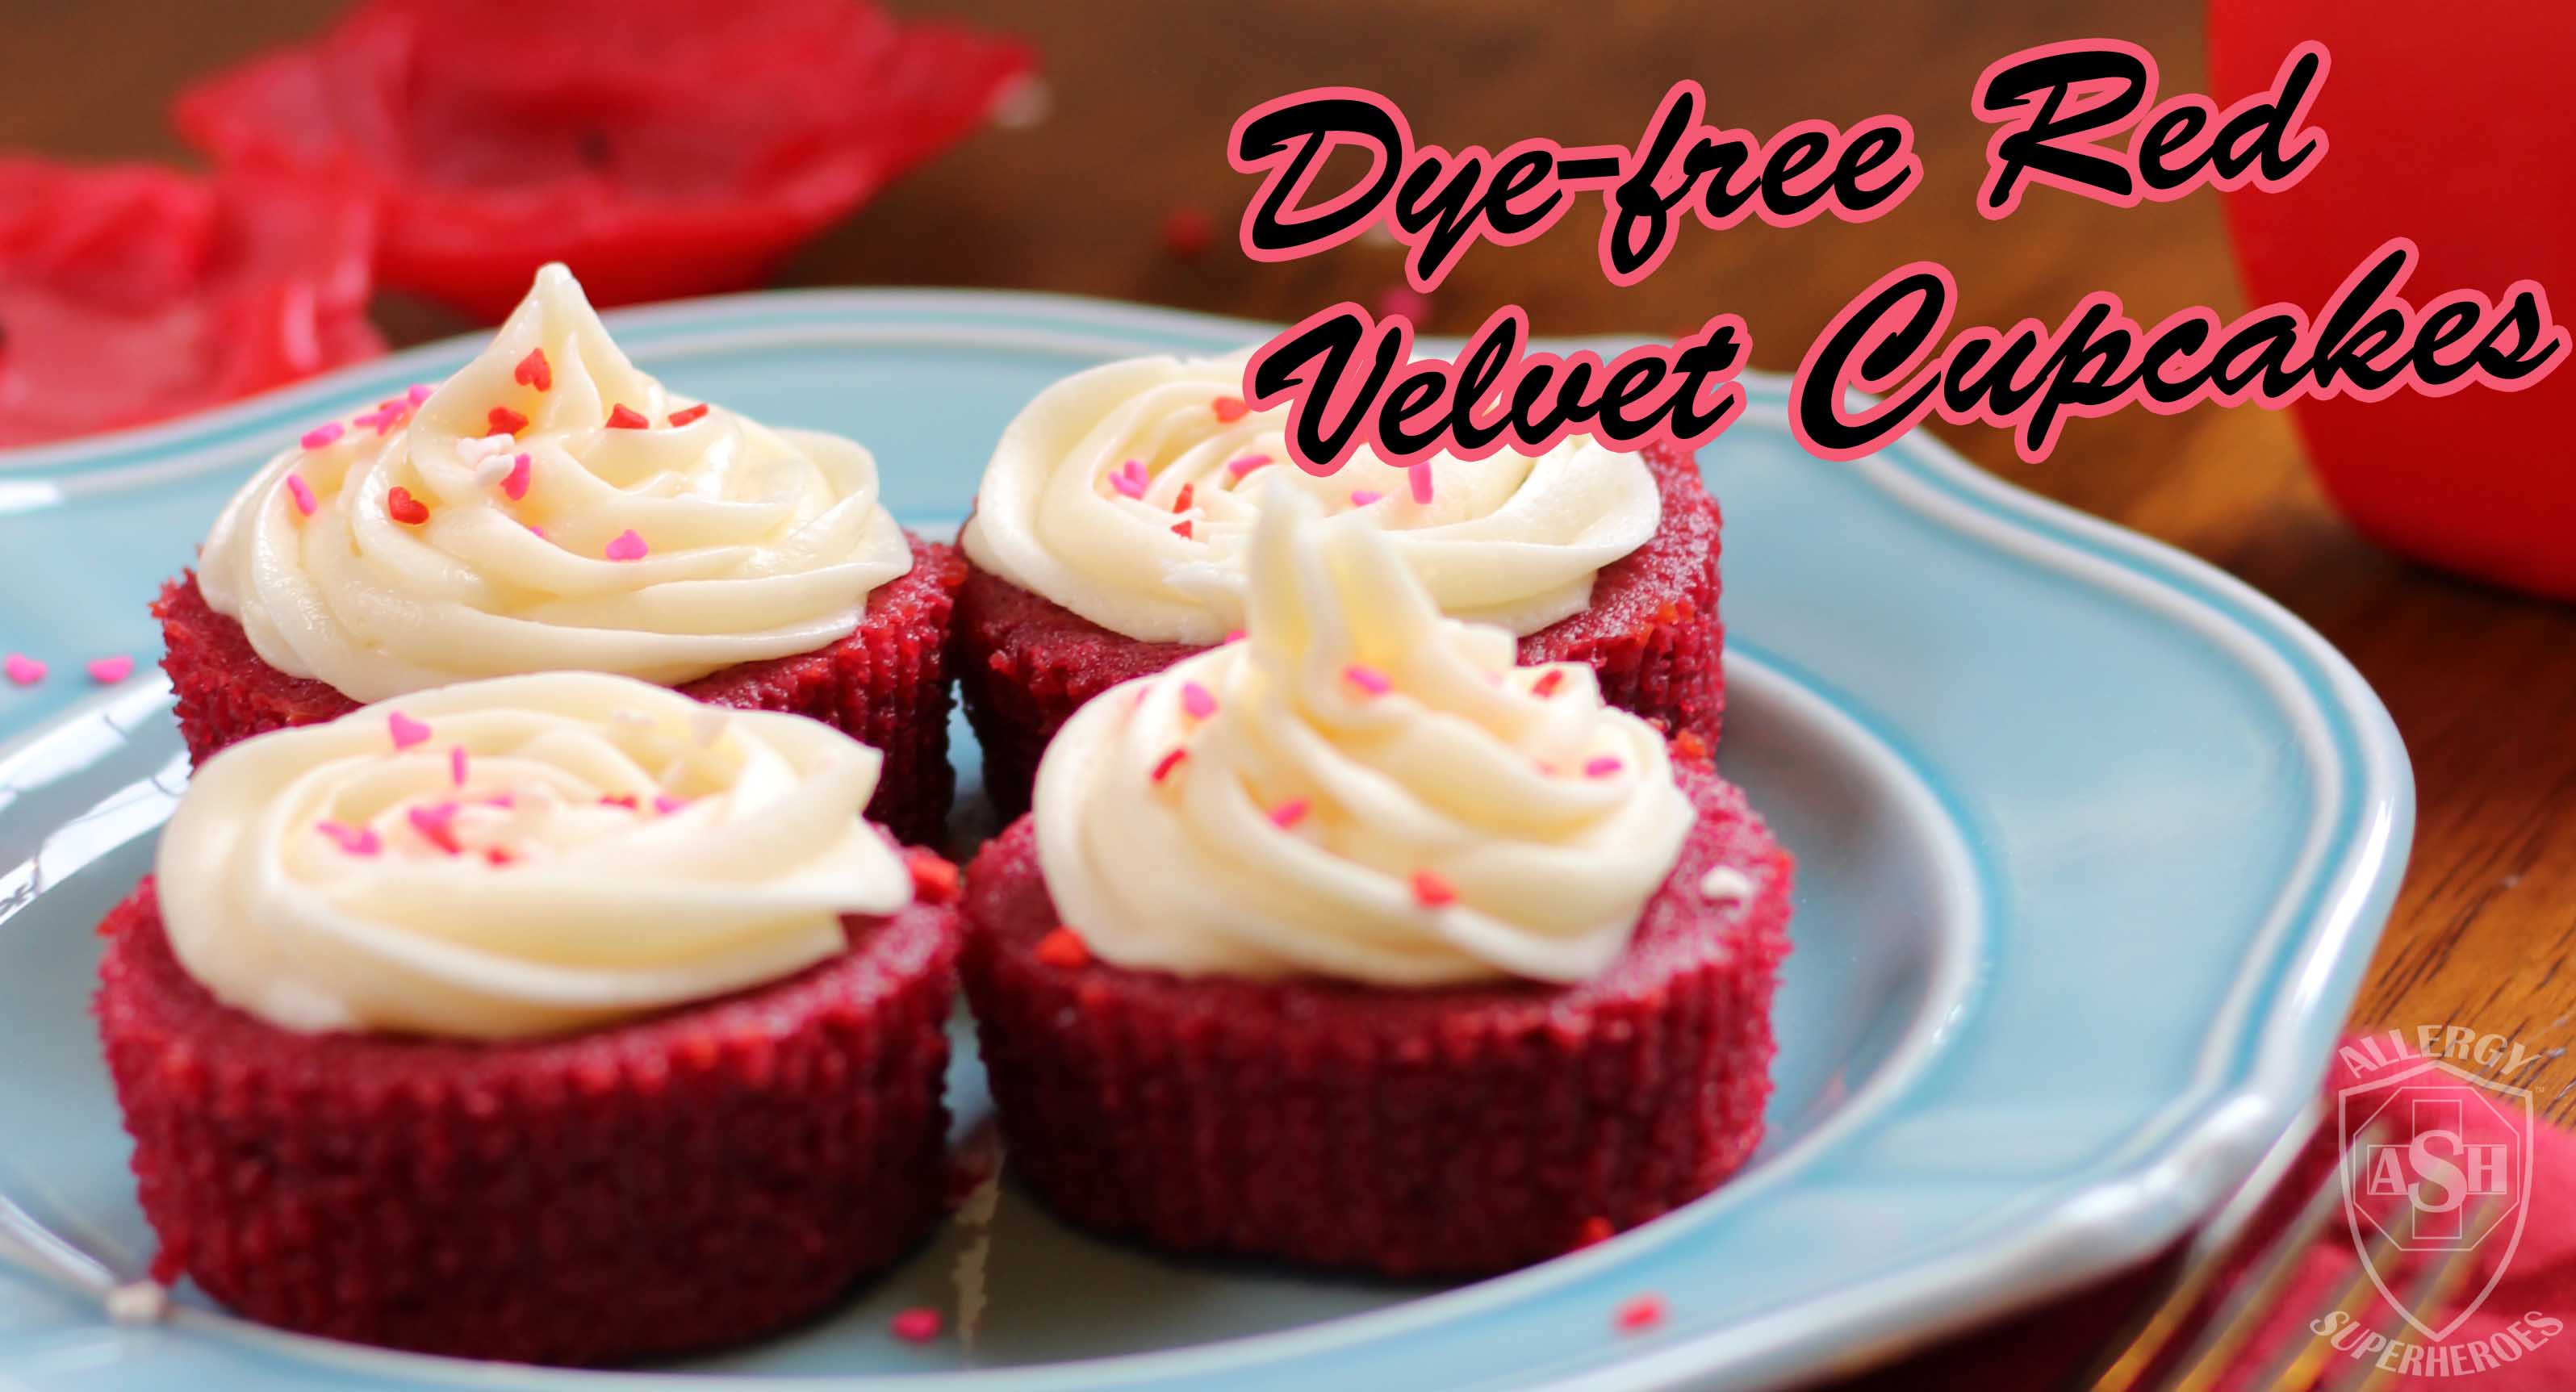 Dye-free, Allergy-Friendly Red Velvet Cupcakes from Allergy Superheroes